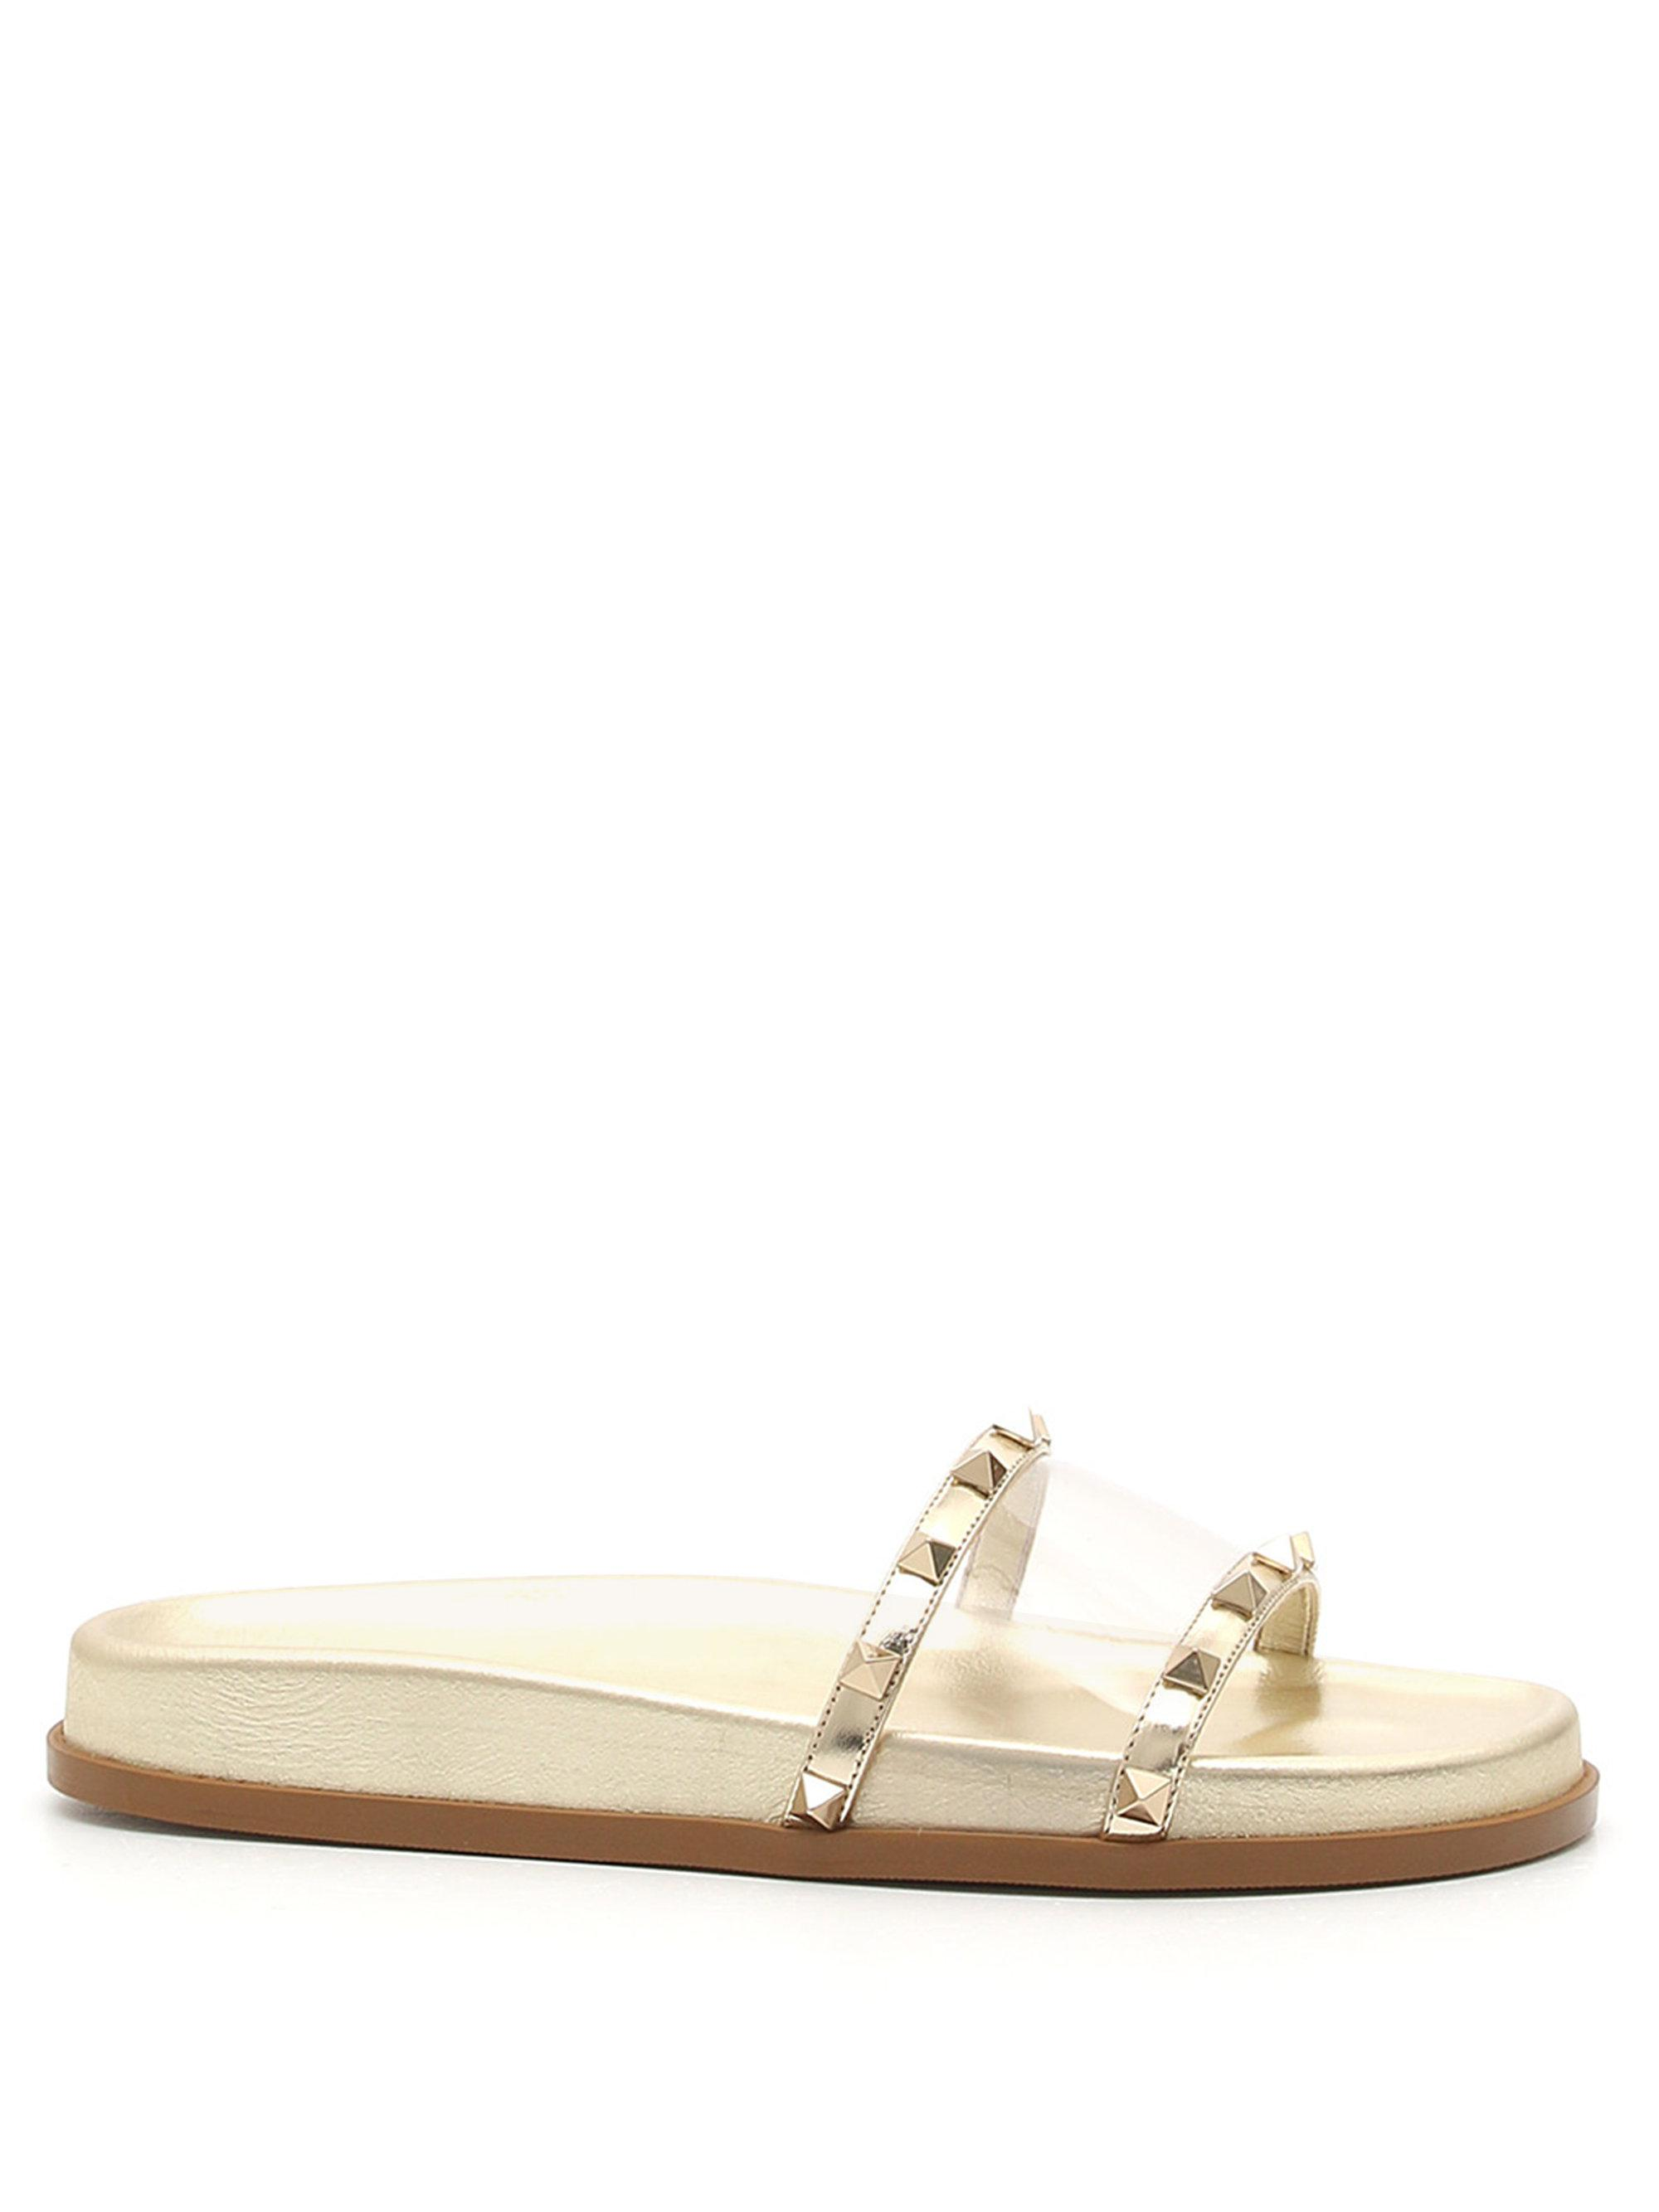 Valentino Women S Moonwalk Studded Slides Gold Size 37